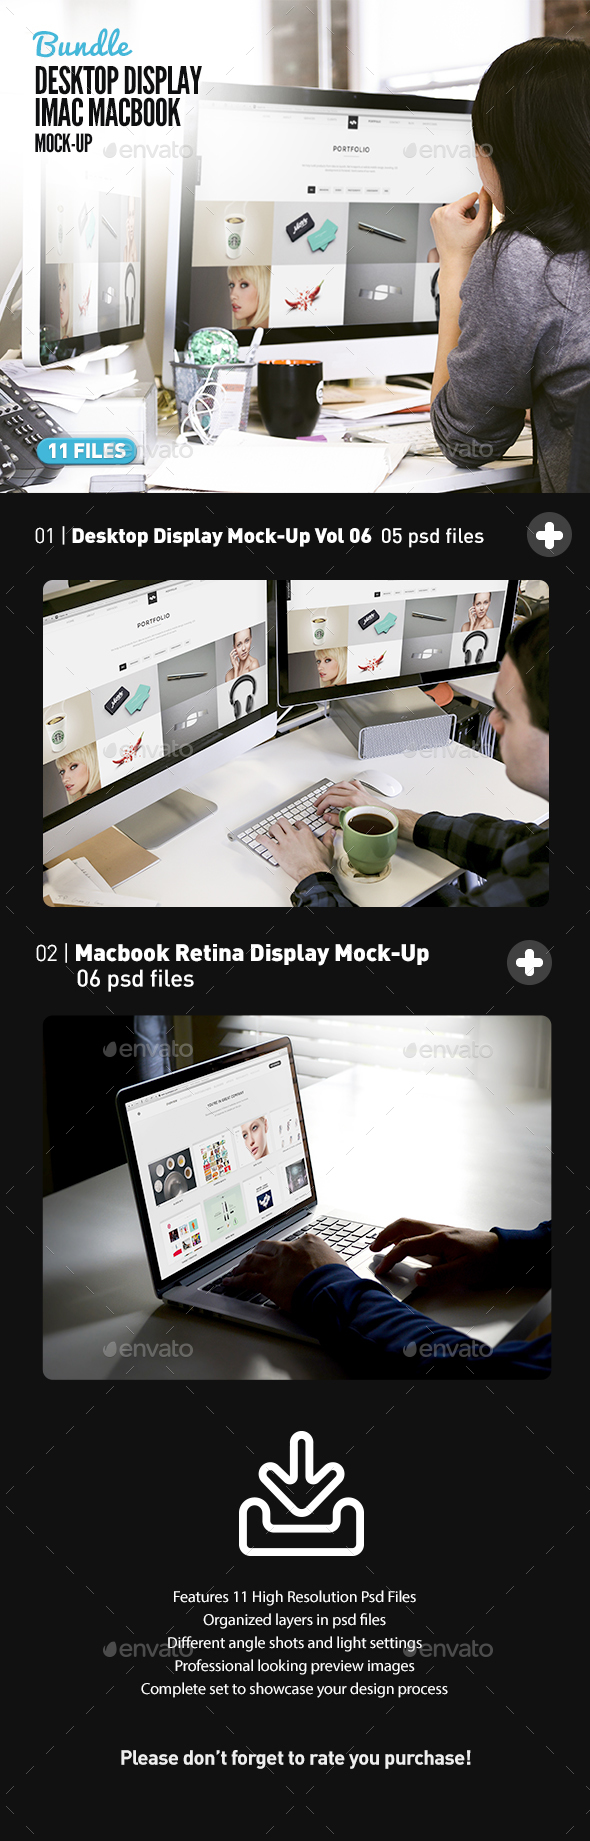 Desktop Screen Work Display Mock-Up Bundle All-in-One (Displays)